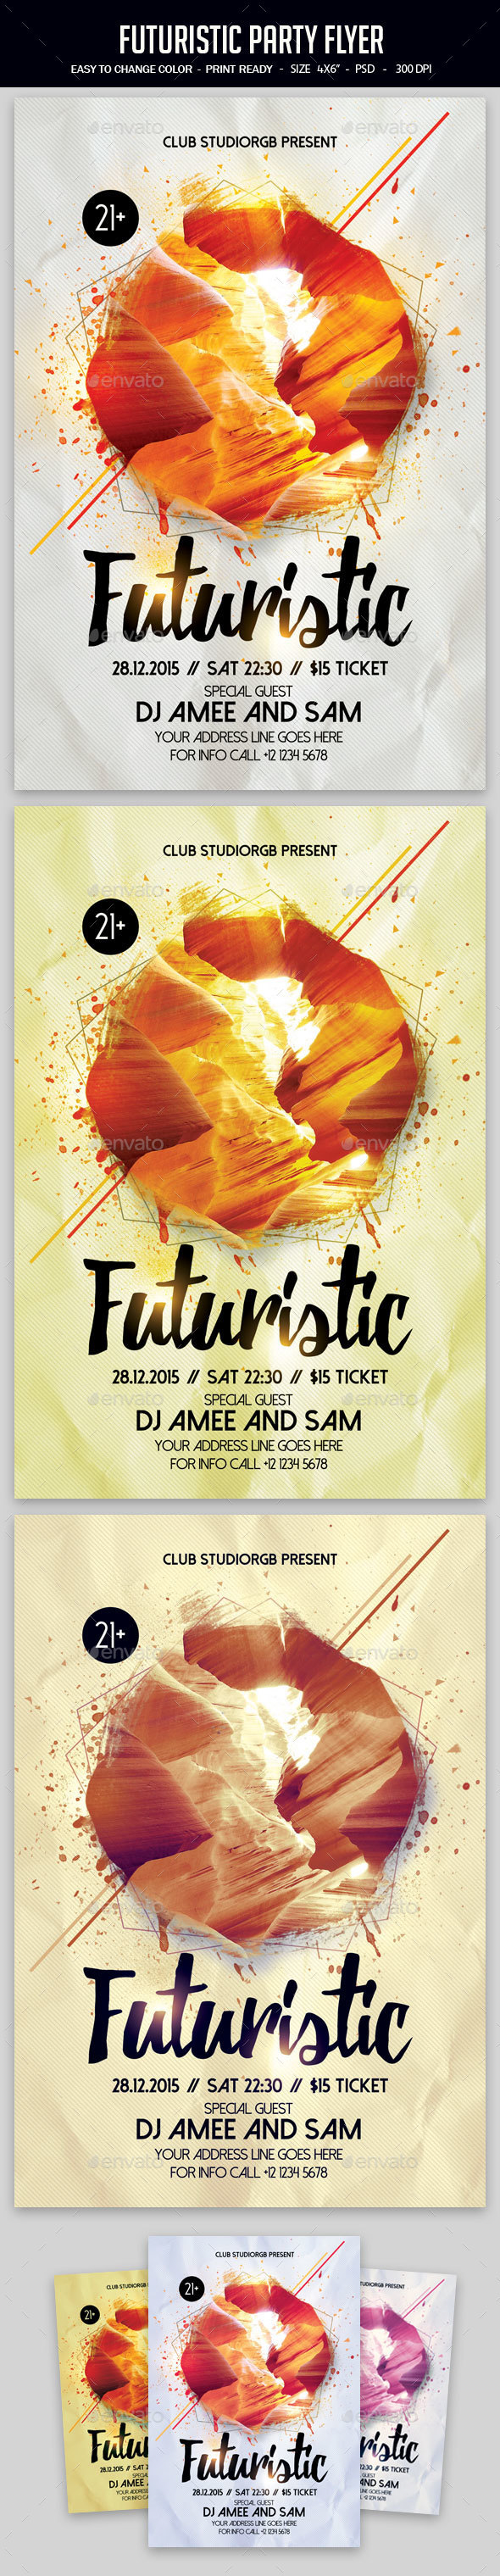 Futuristic Party Flyer - Clubs & Parties Events